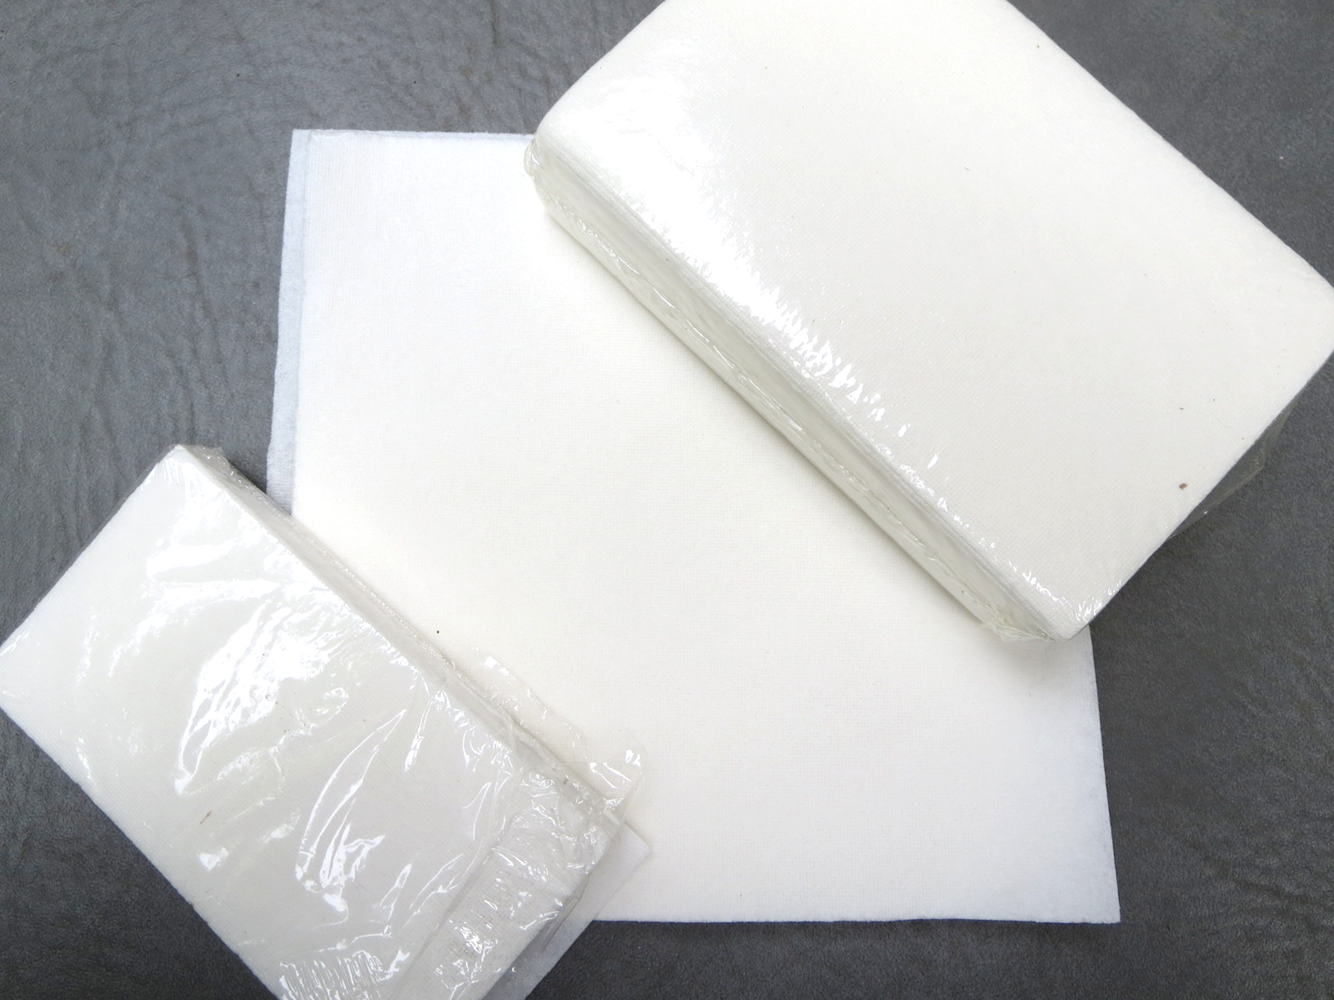 #02-01282CG04 DriMop® Medical Liquid Absorber/Solidifier Laminated Paper Sheets - 3` x 5`